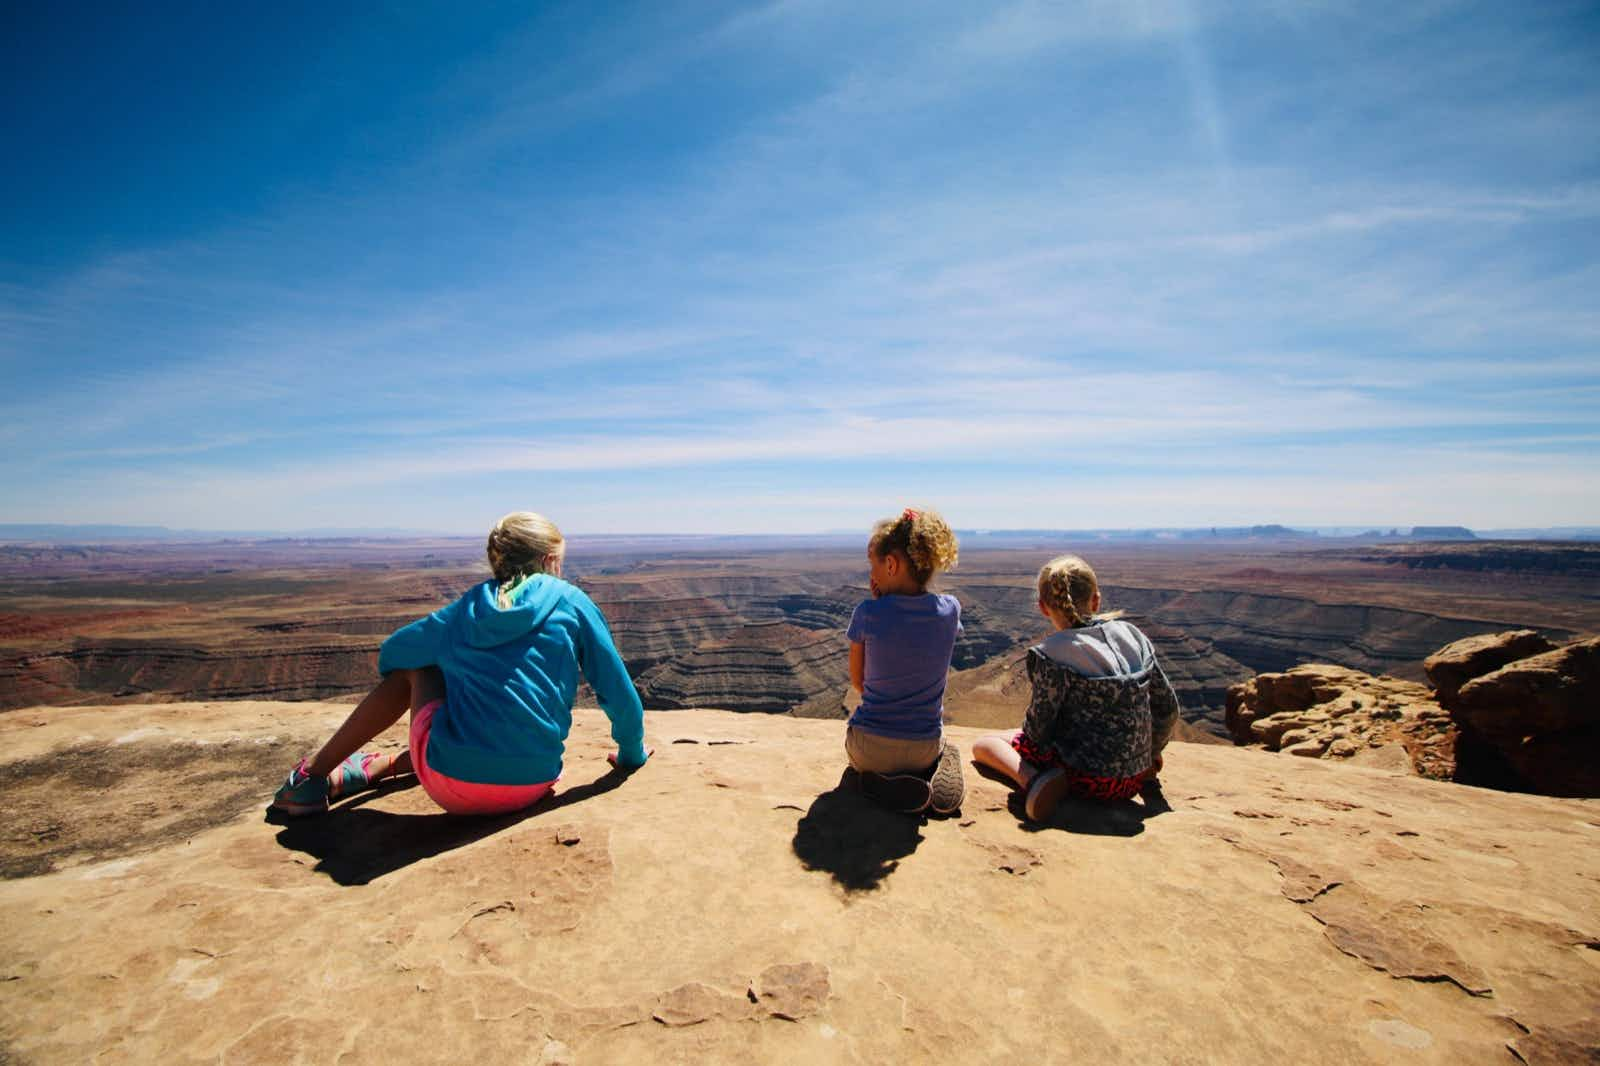 Three children sit on the edge of a rocky overlook, with canyons spread out below them